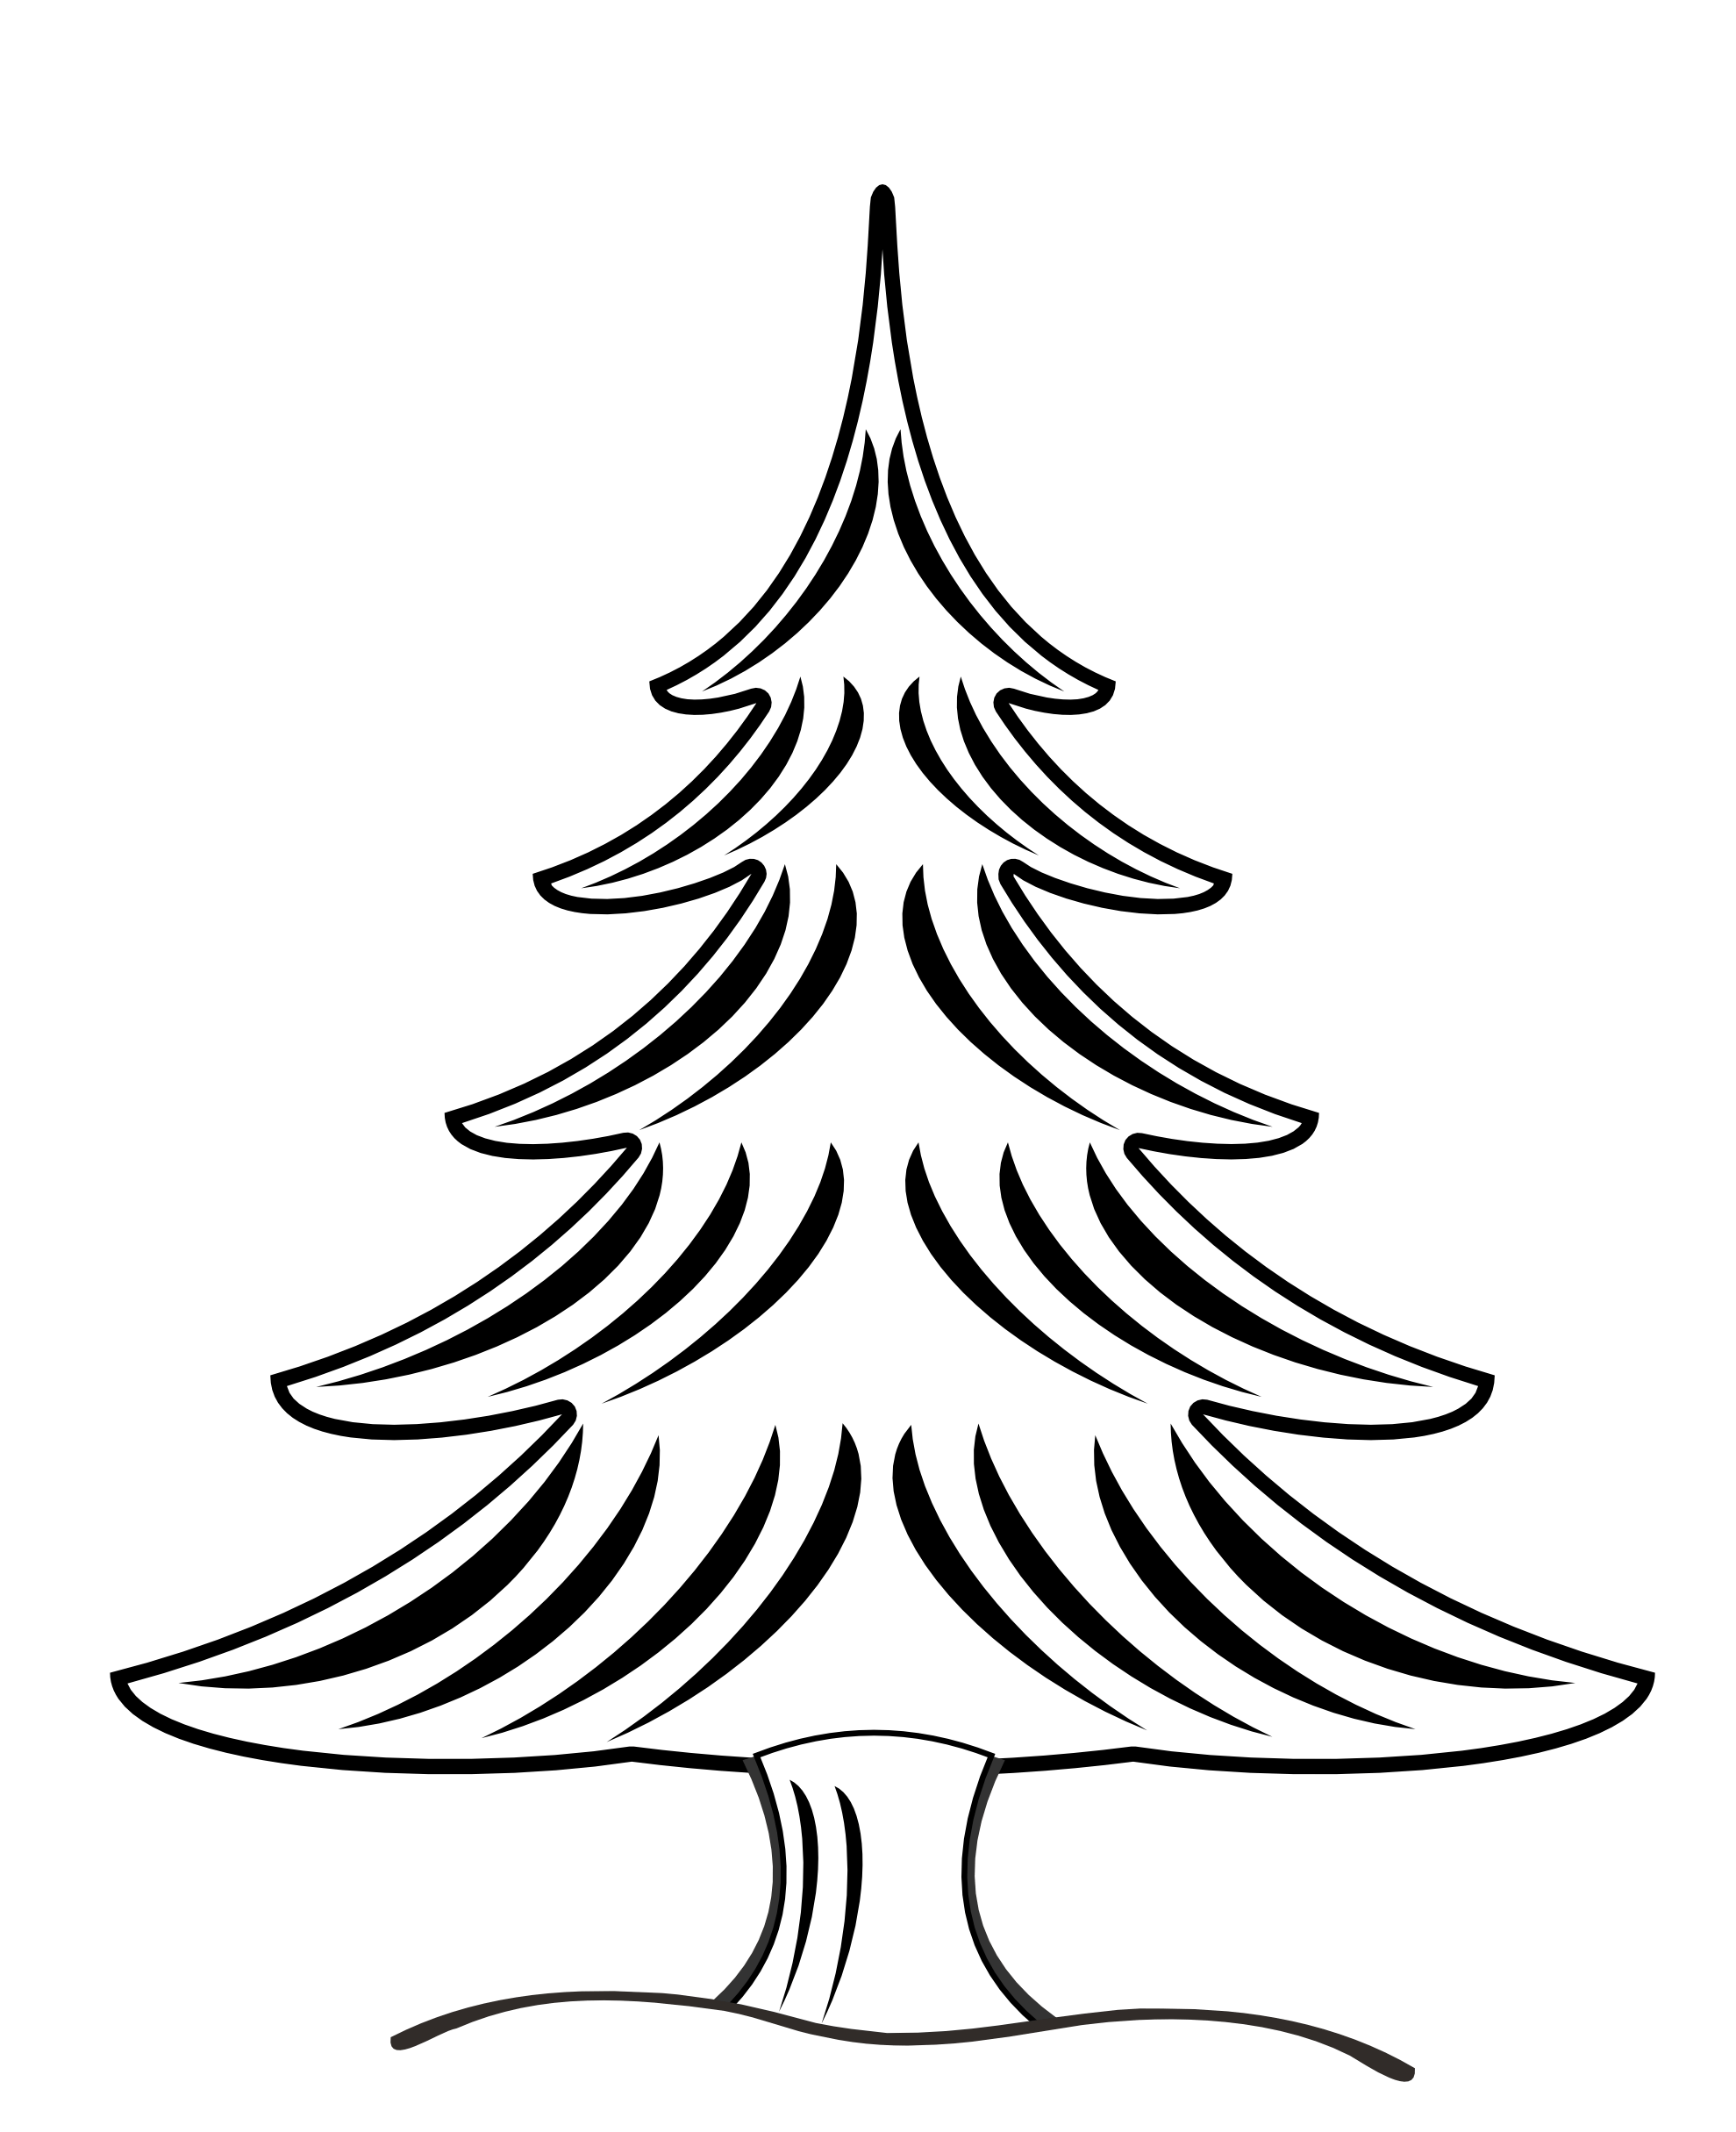 Evergreen tree clipart black and white freeuse library Evergreen Tree Clipart Group (52+) freeuse library